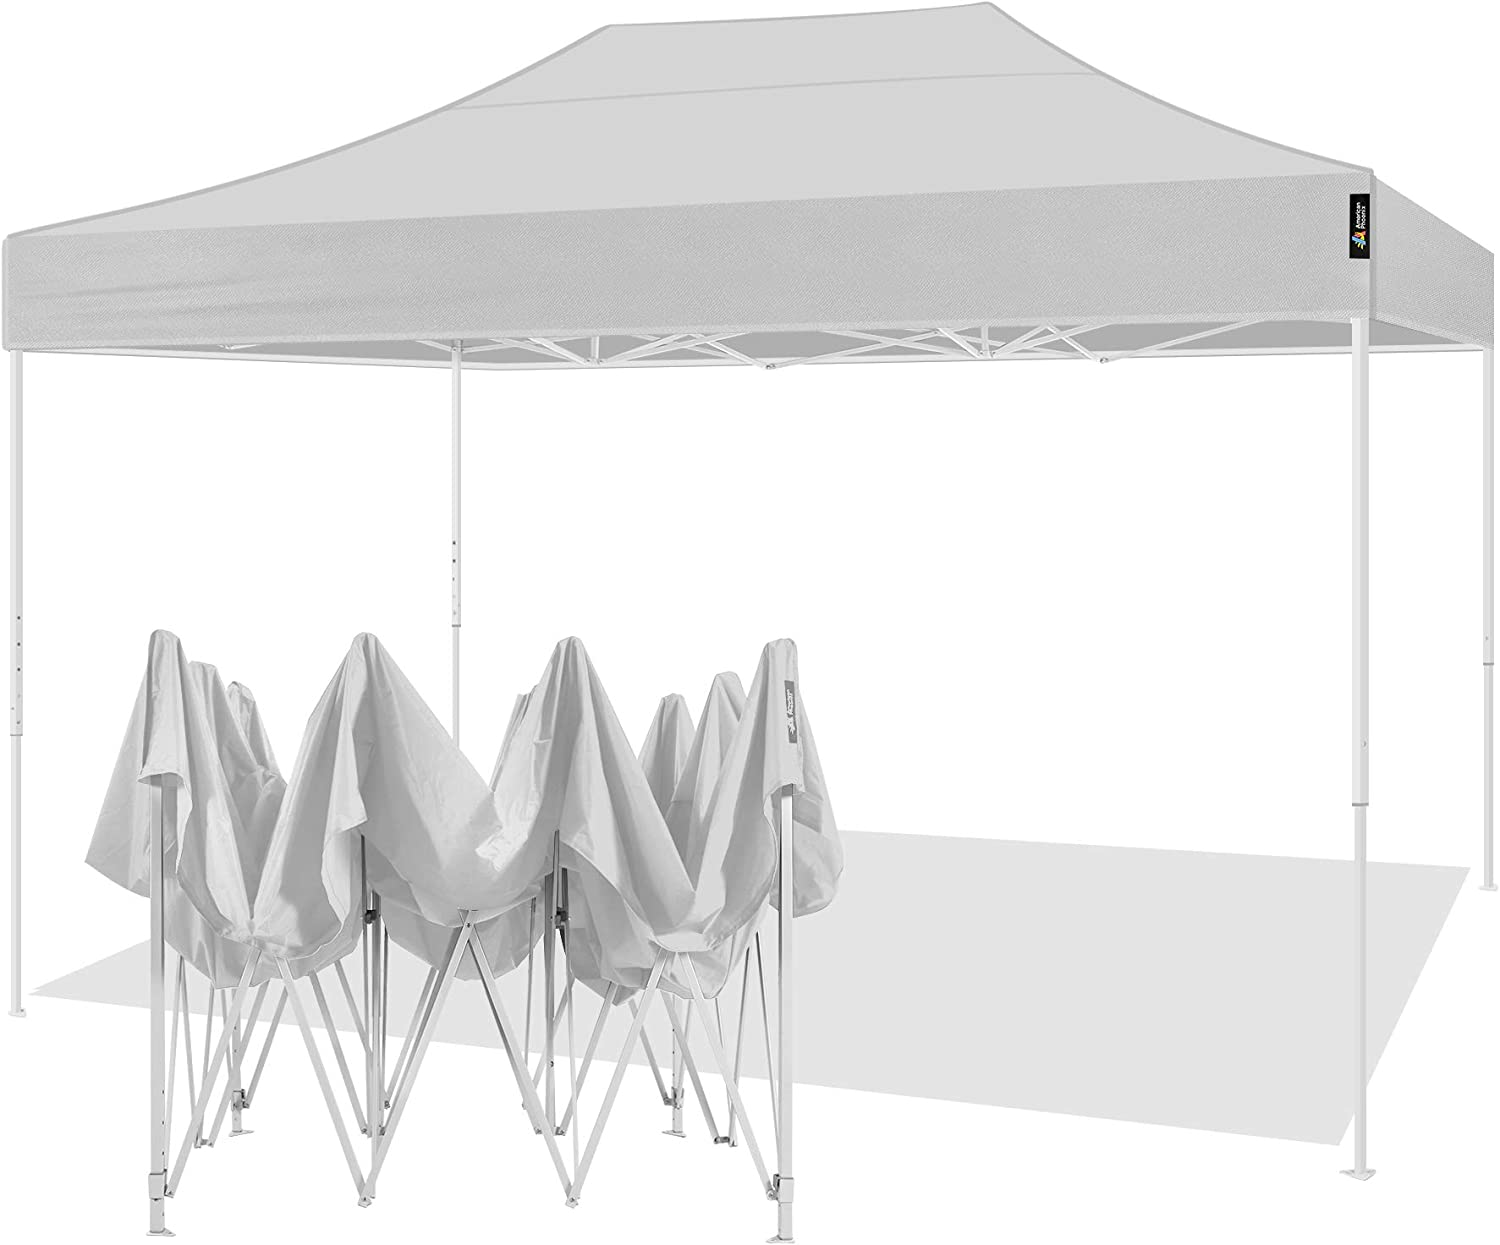 , Blue AMERICAN PHOENIX 10x15 Pop Up Tent Instant Canopy Commercial Outdoor Party Canopy Shelter White Frame 10x15FT